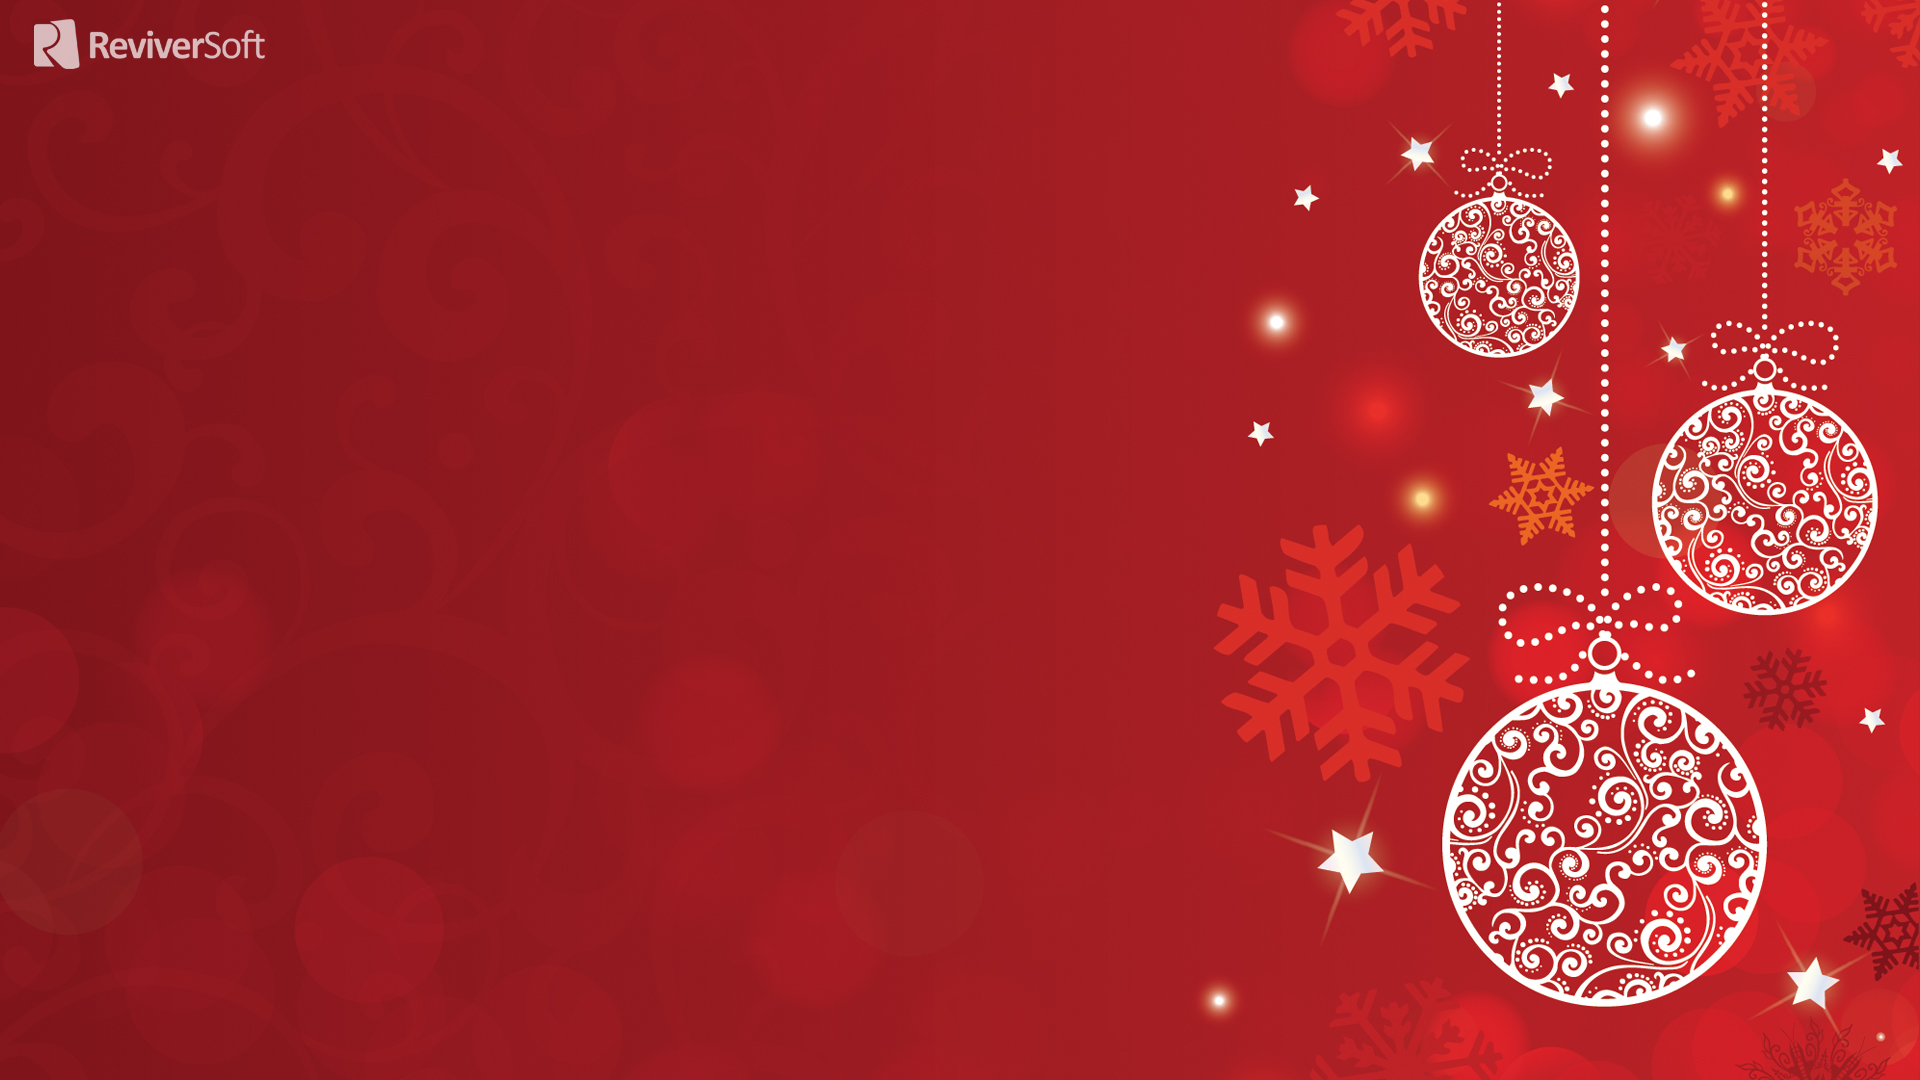 Where can I find holiday themes and wallpaper for Windows 8 earlier 1920x1080